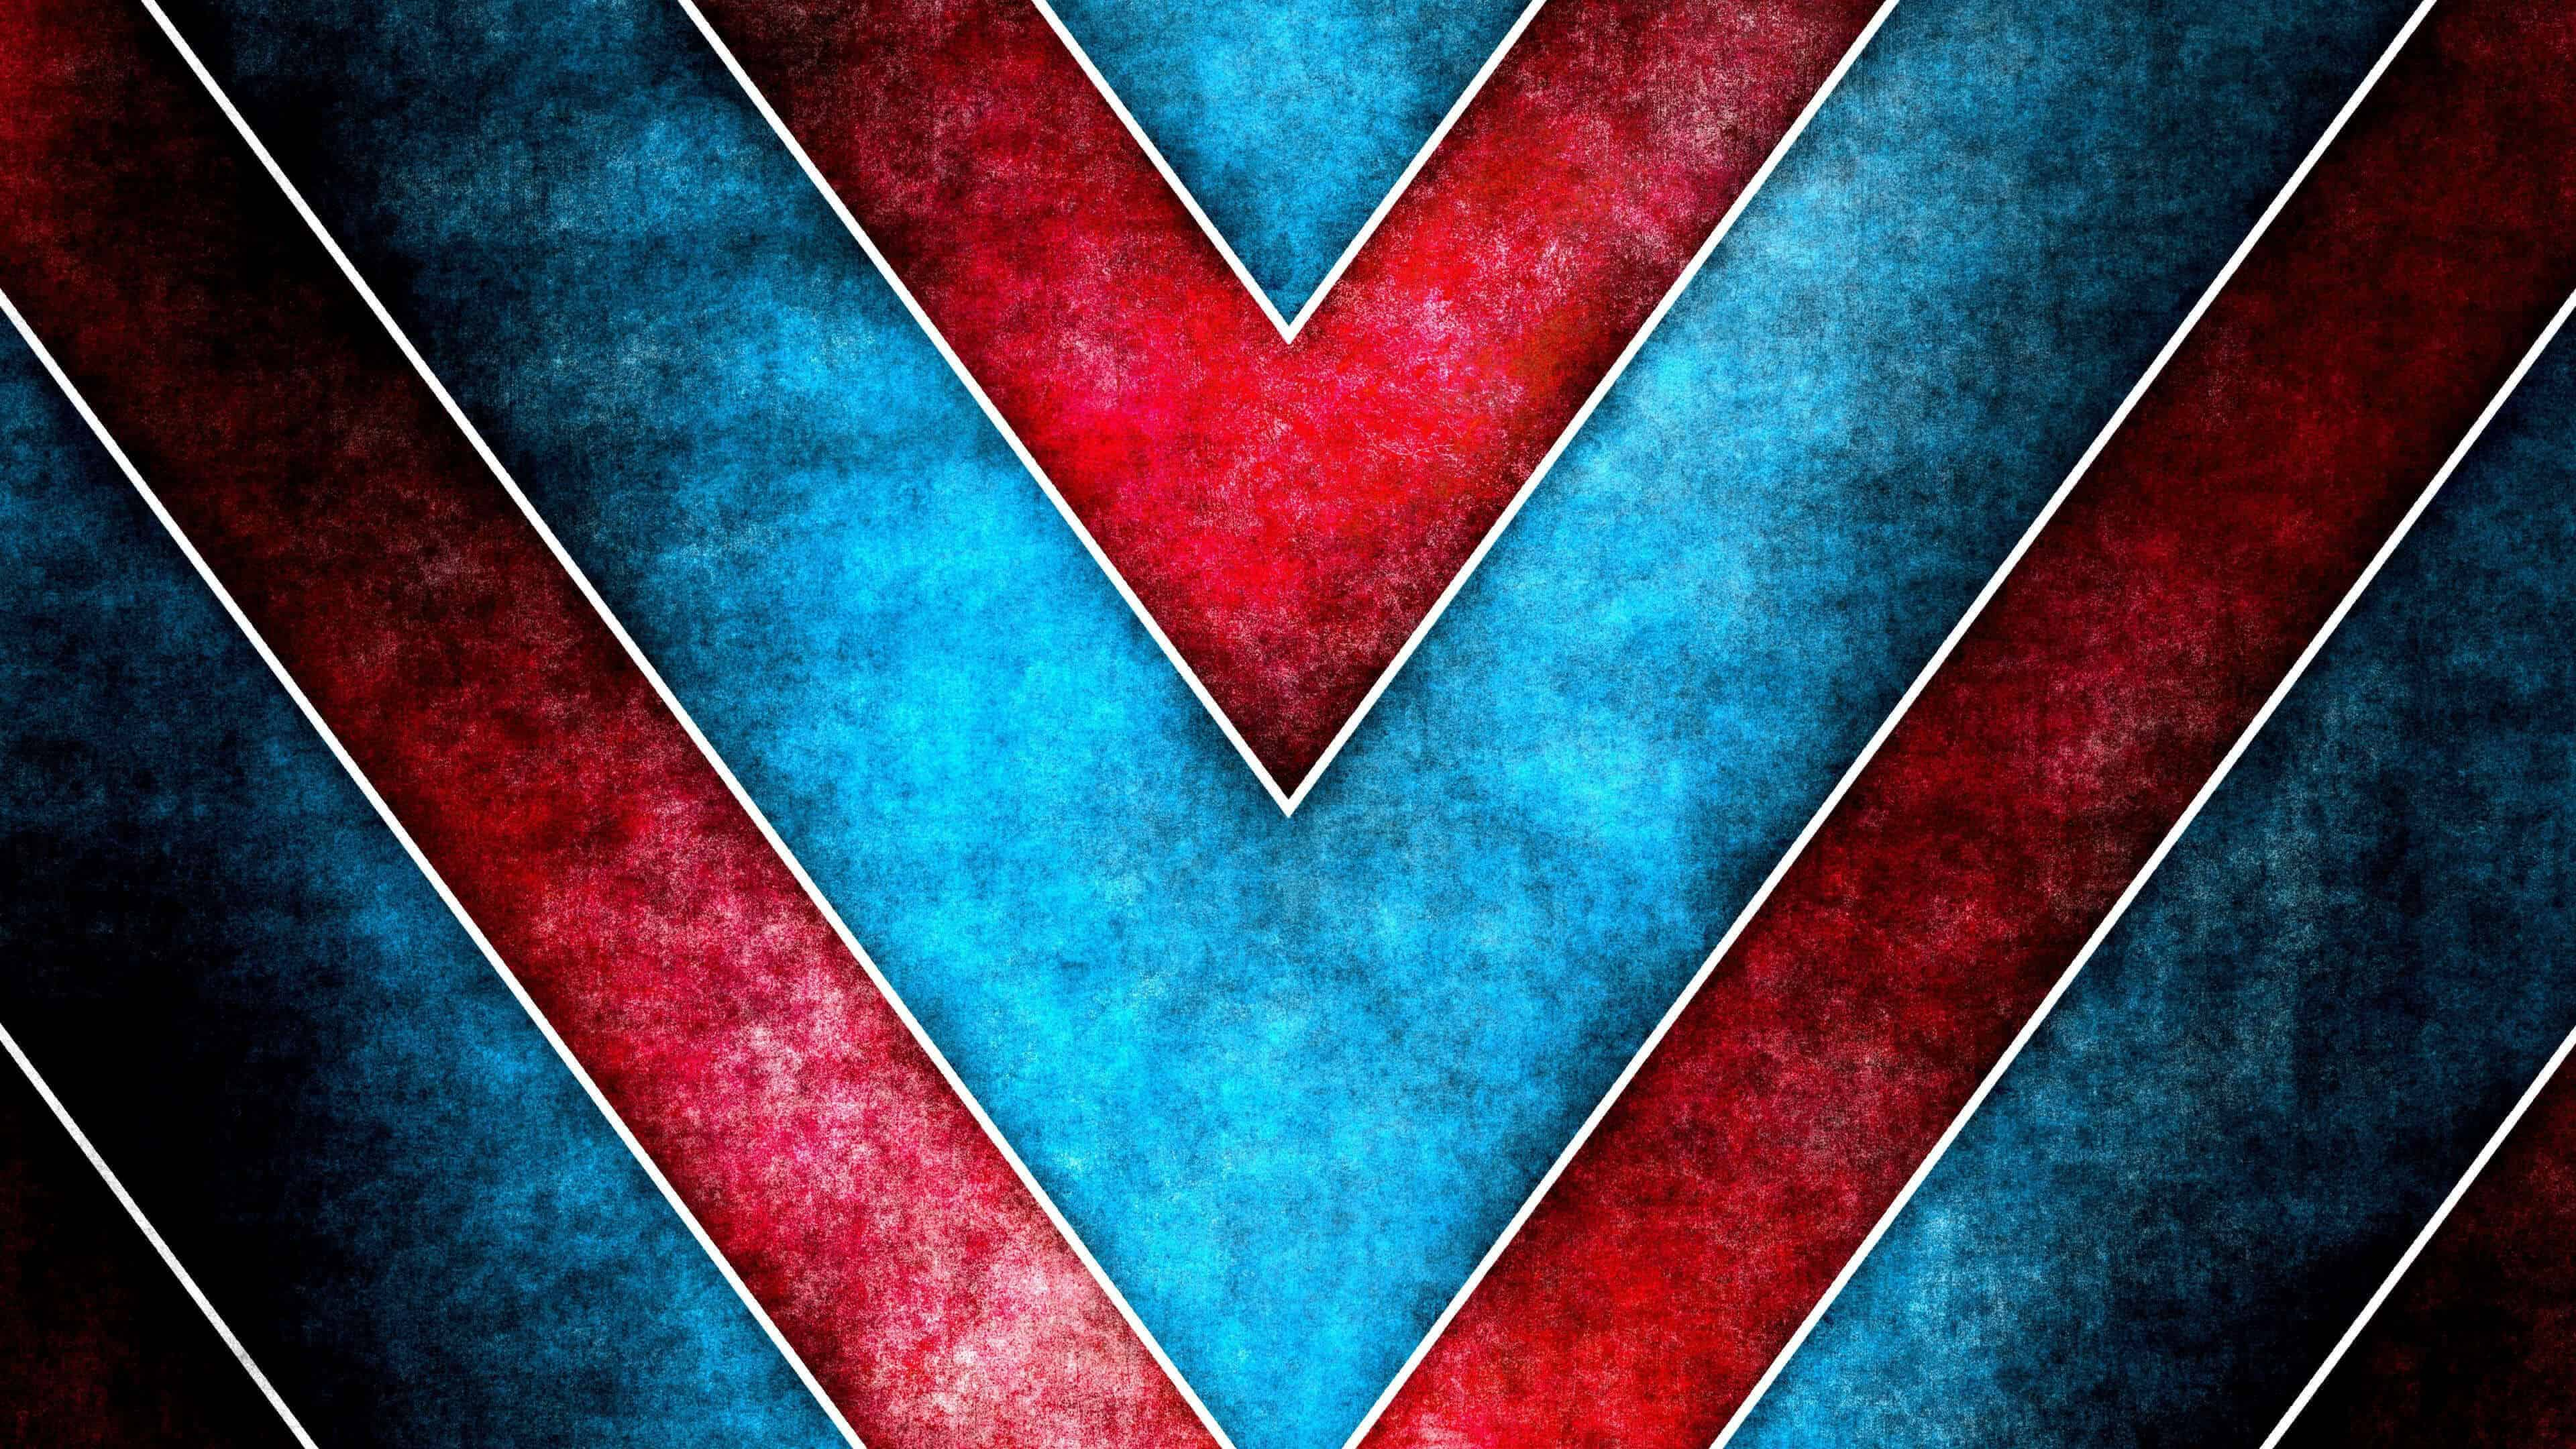 Red And Blue Background Hd Posted By Ethan Thompson